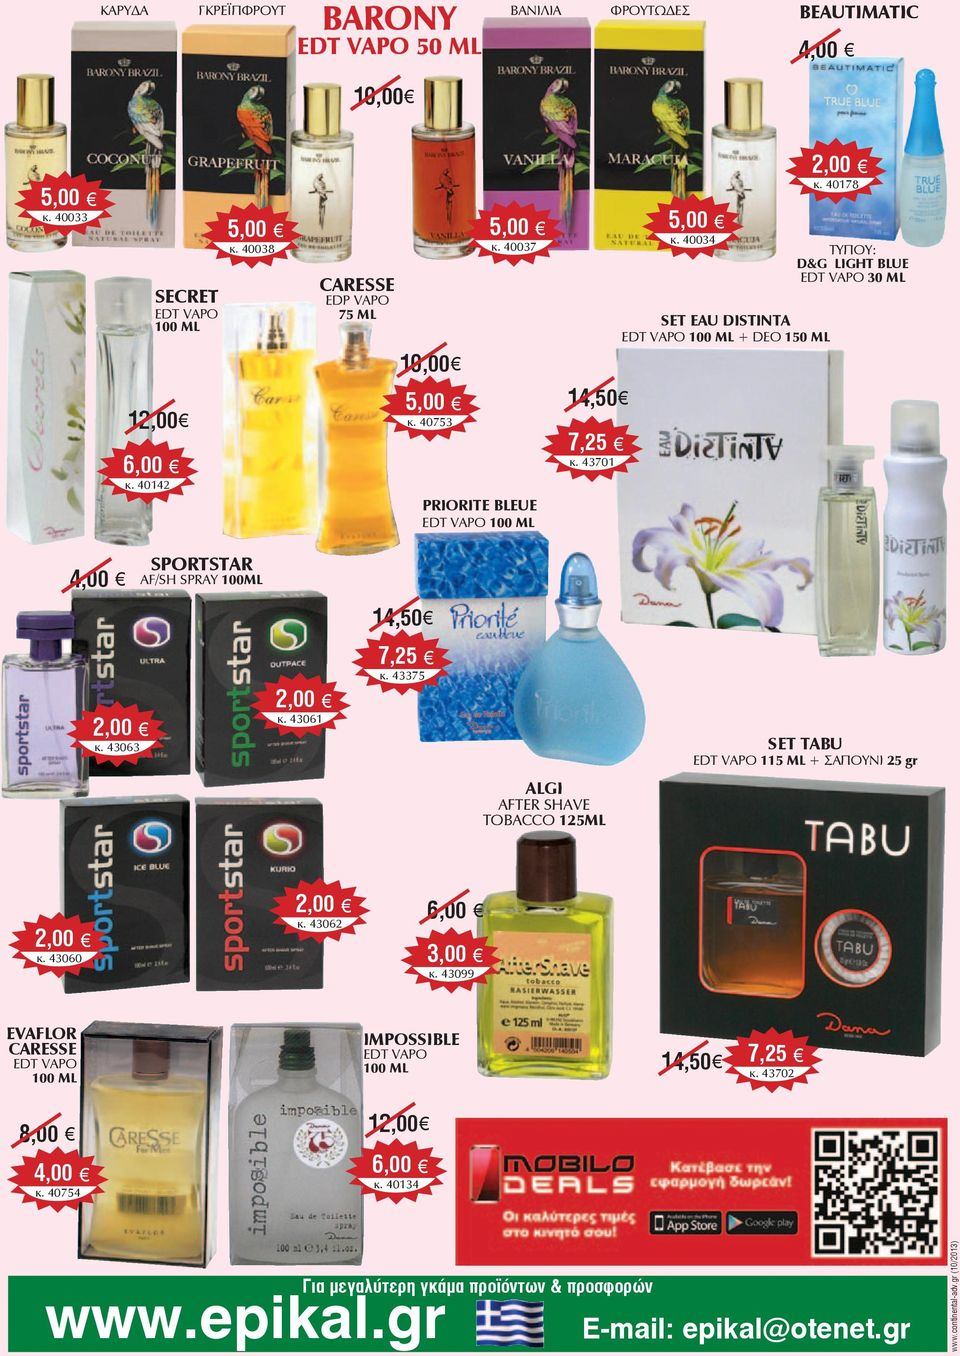 43701 SPORTSTAR AF/SH SPRAY 100ML 1 κ. 43063 κ. 43061 7,25 κ. 43375 SET TABU EDT VAPO 115 ML + ΣΑΠΟΥΝΙ 25 gr ALGI AFTER SHAVE TOBACCO 125ML κ. 43060 κ. 43062 κ.